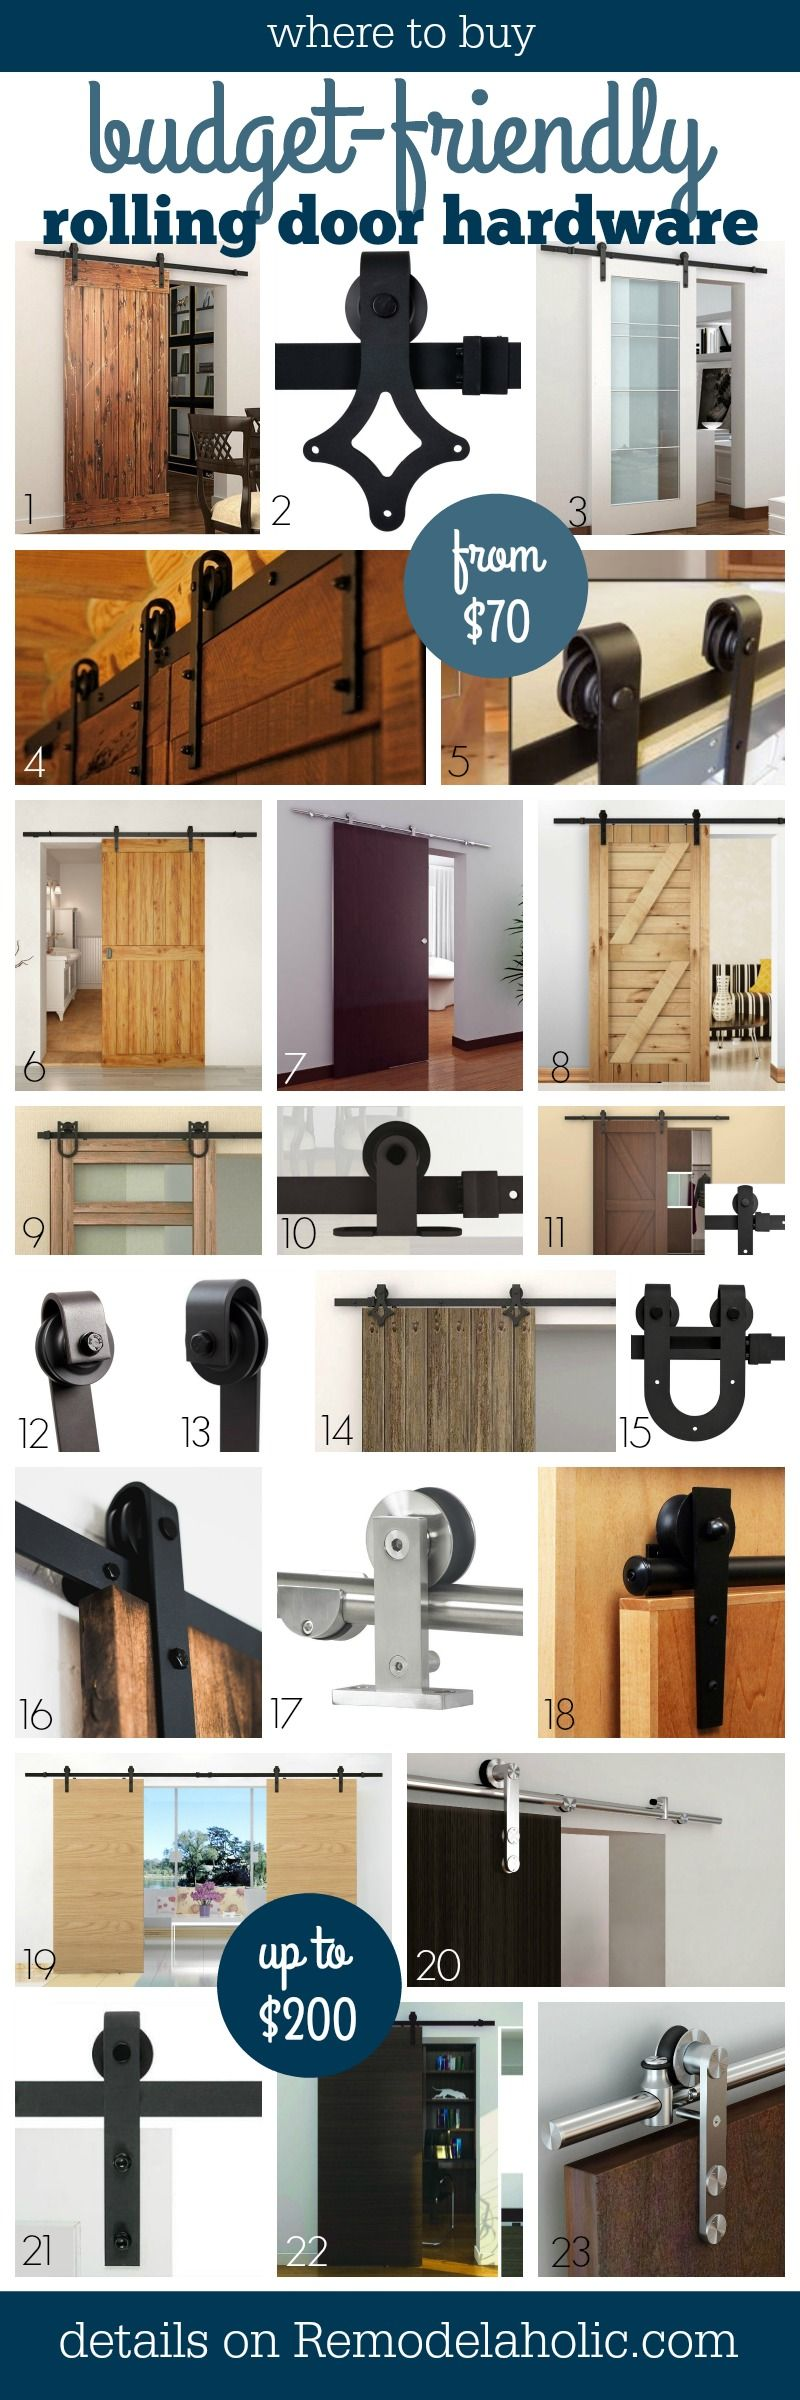 35 diy barn doors rolling door hardware ideas barn doors hardware and barn